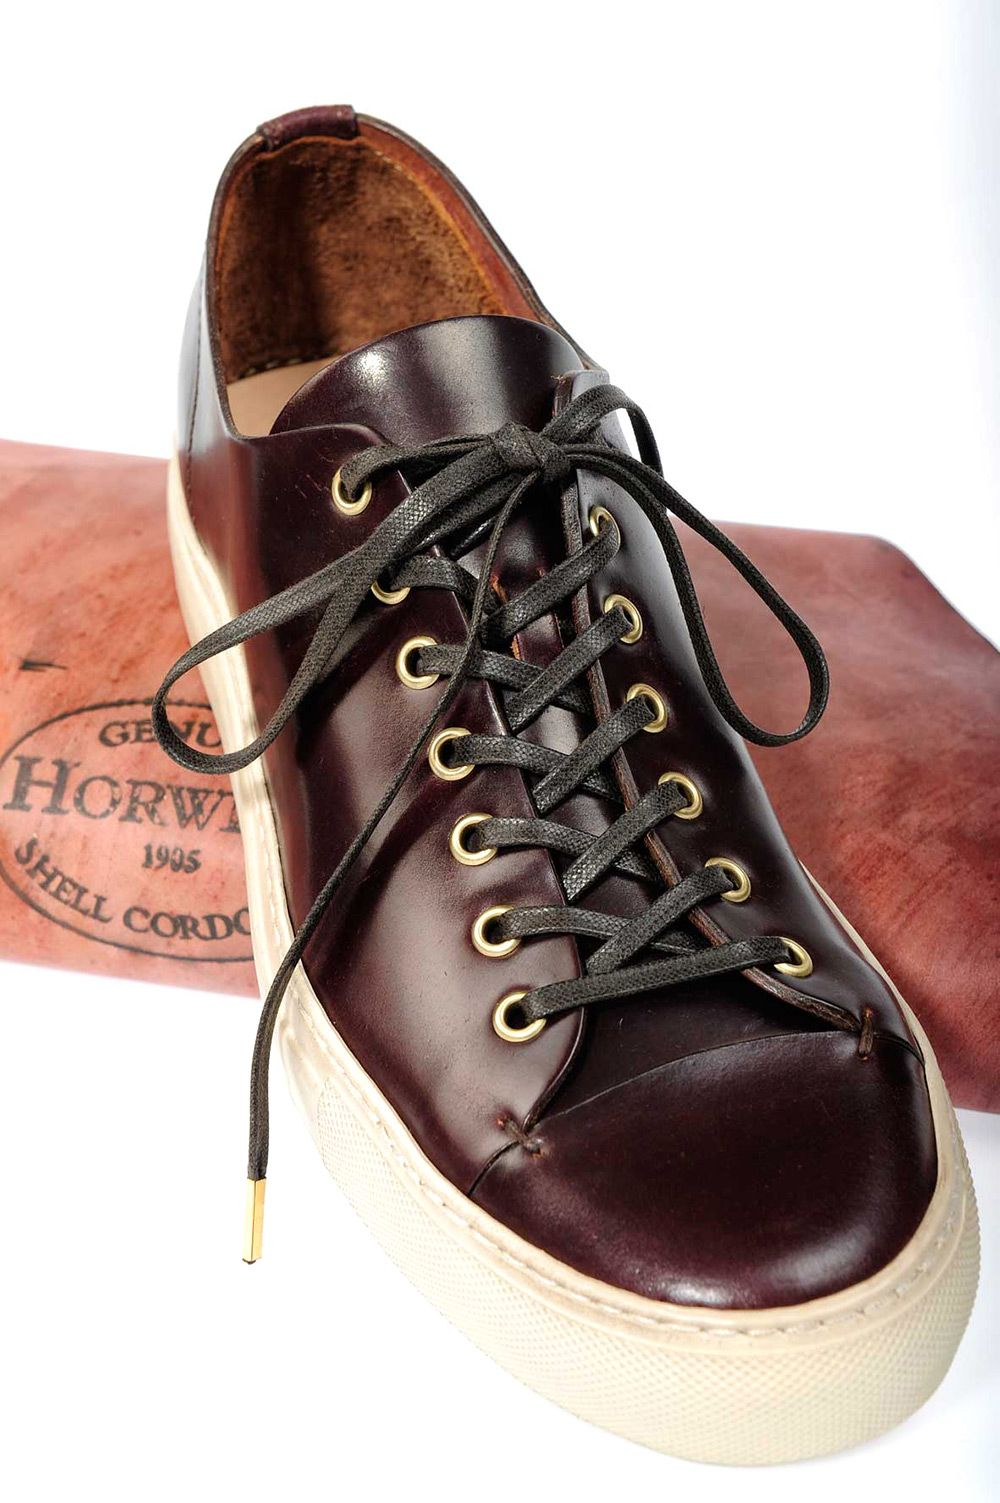 4b0ff8db18ea Buttero and 14oz Horween Leather Shoes • Selectism